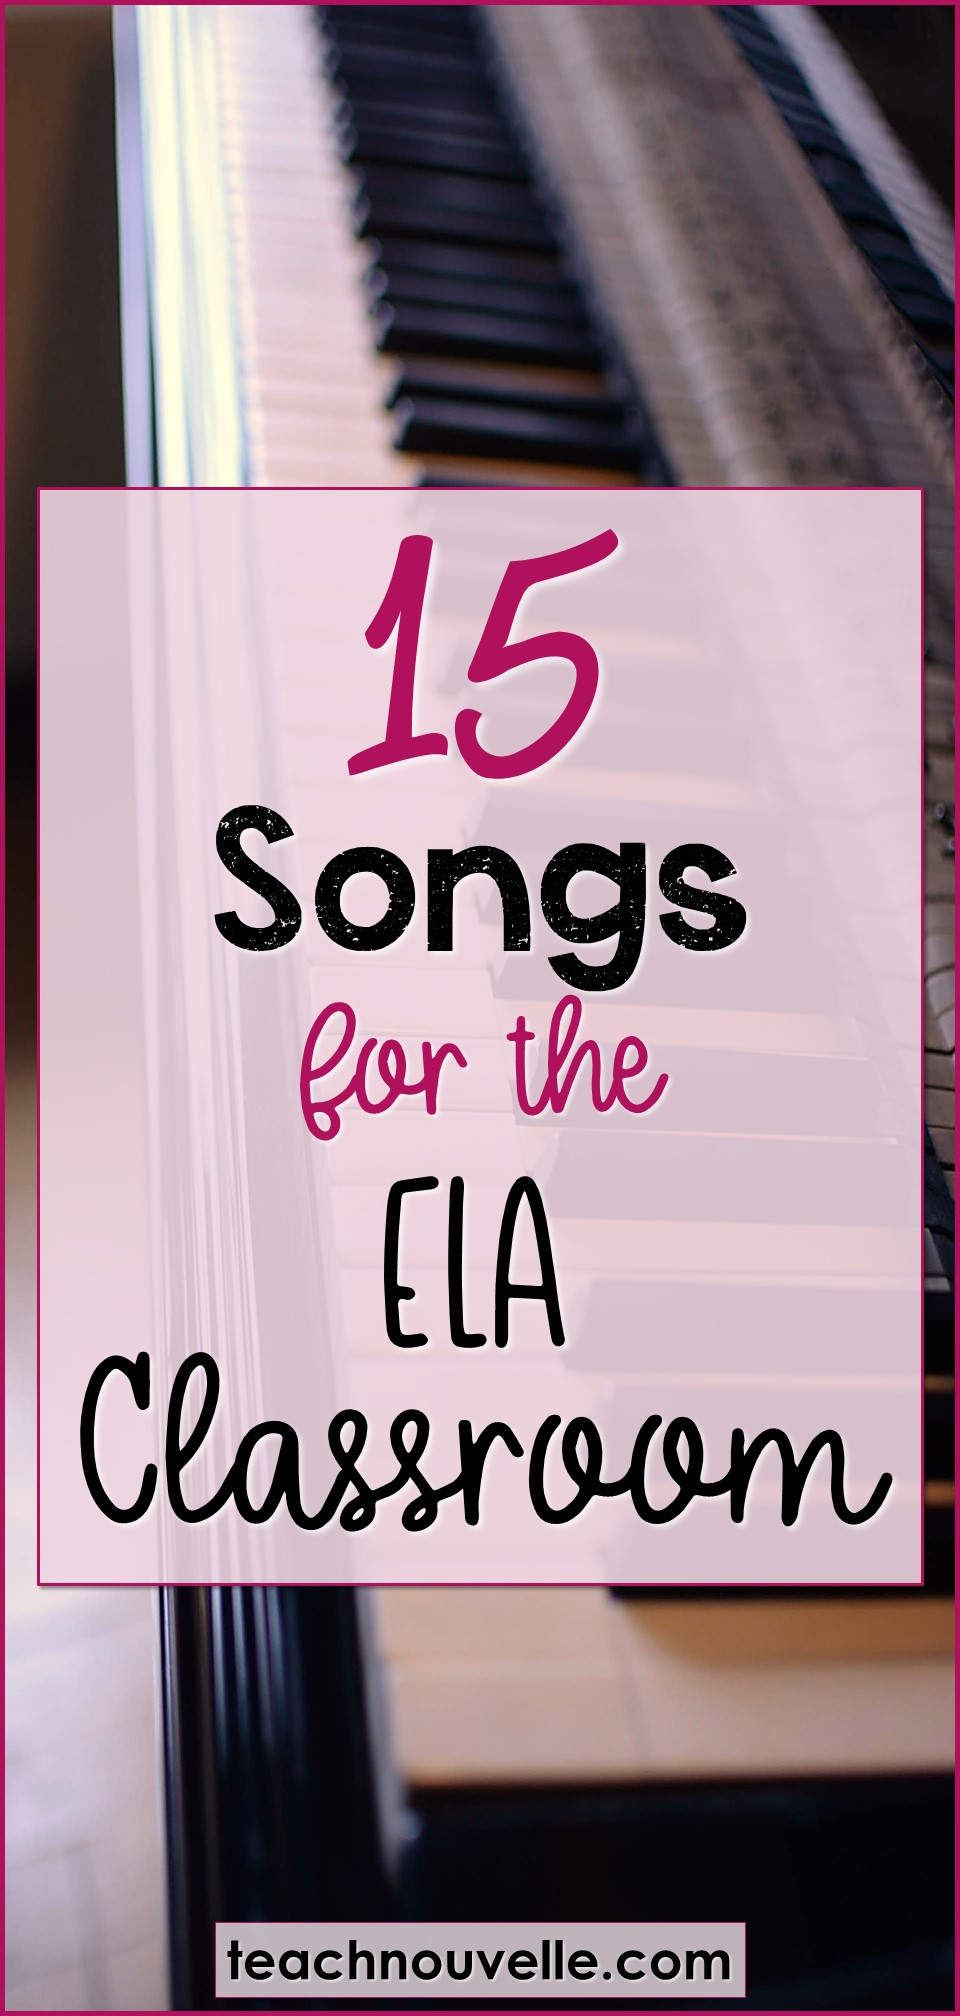 Using music in the secondary classroom is a great way to engage students, so here are some songs to use in ELA, and some ways to use them. (Blog post)